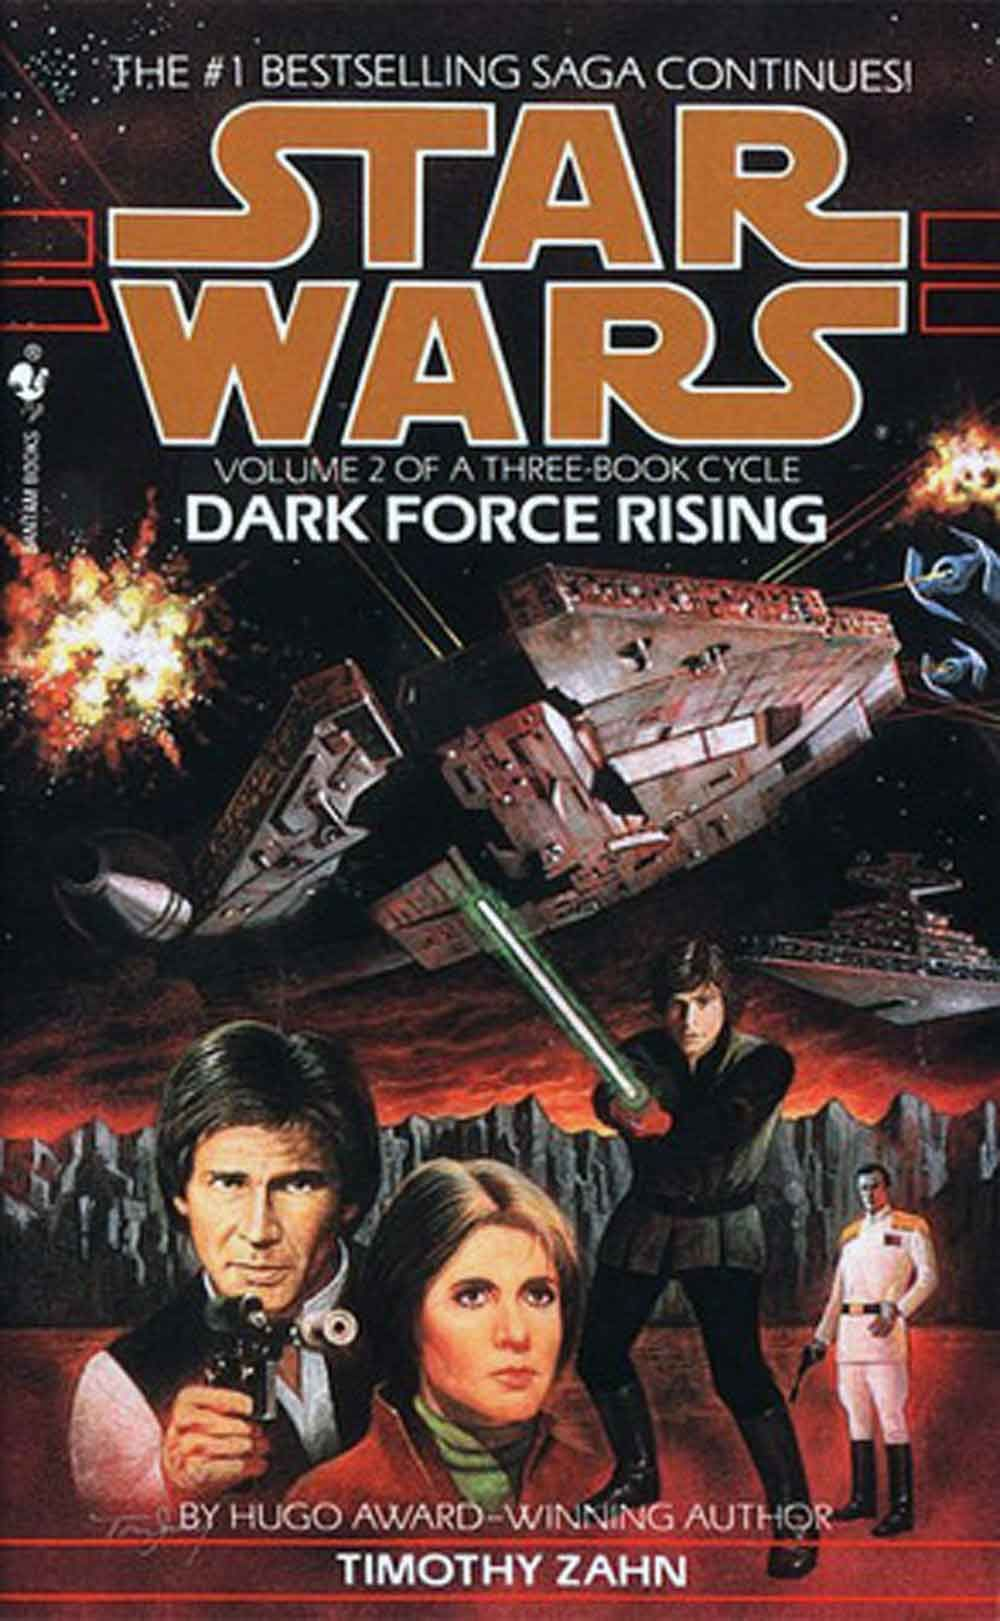 Timothy Zahn  Dark Force Rising  The Empire isn't quite dead yet.  Admiral Thrawn has located several Imperial warships thought lost long ago and is attempting to reassert power.